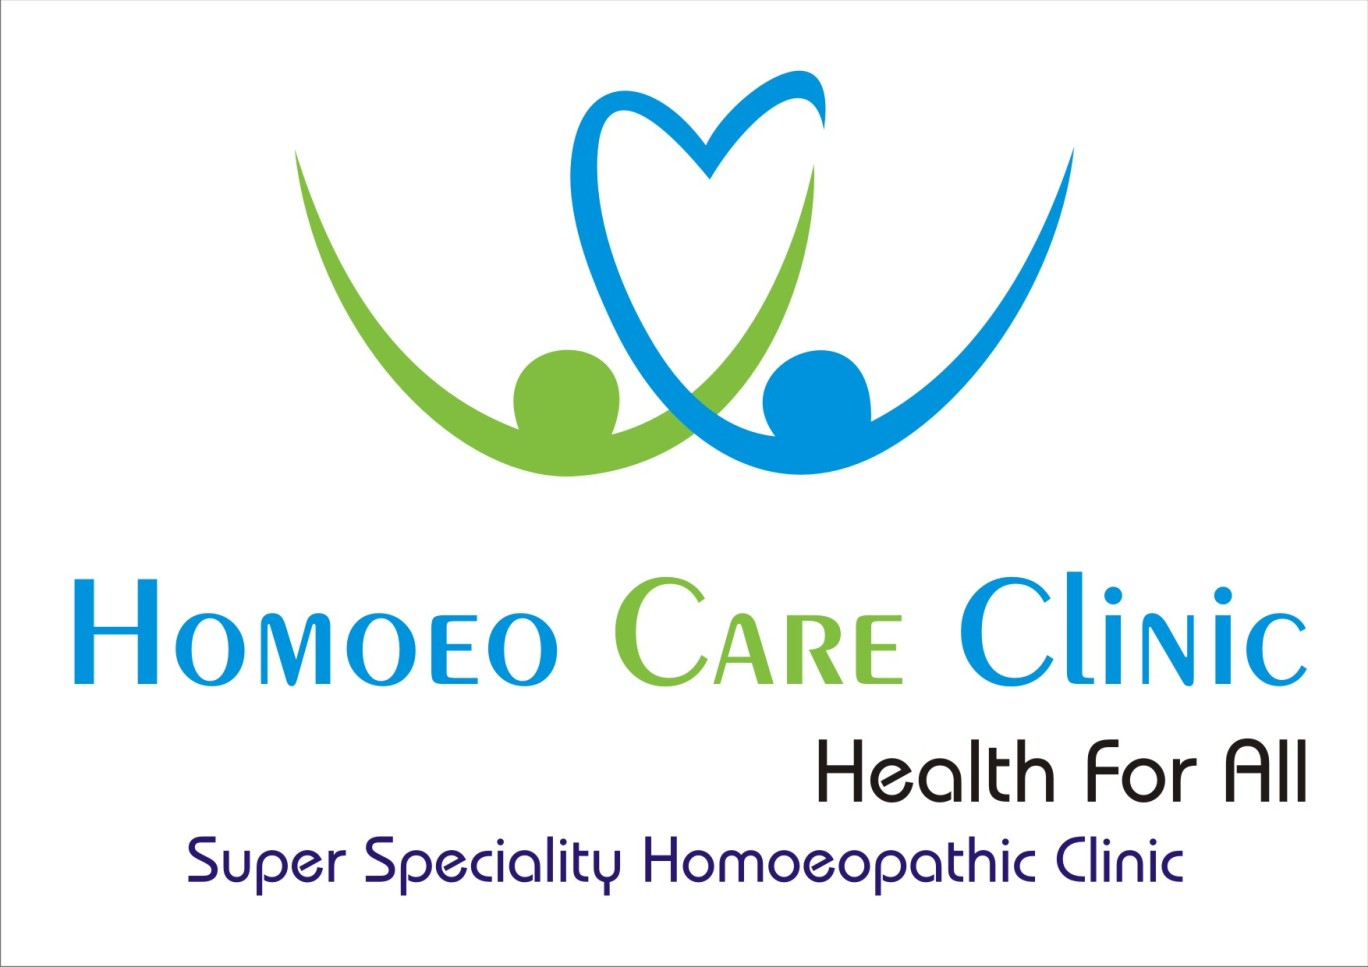 Homeo Care Clinic